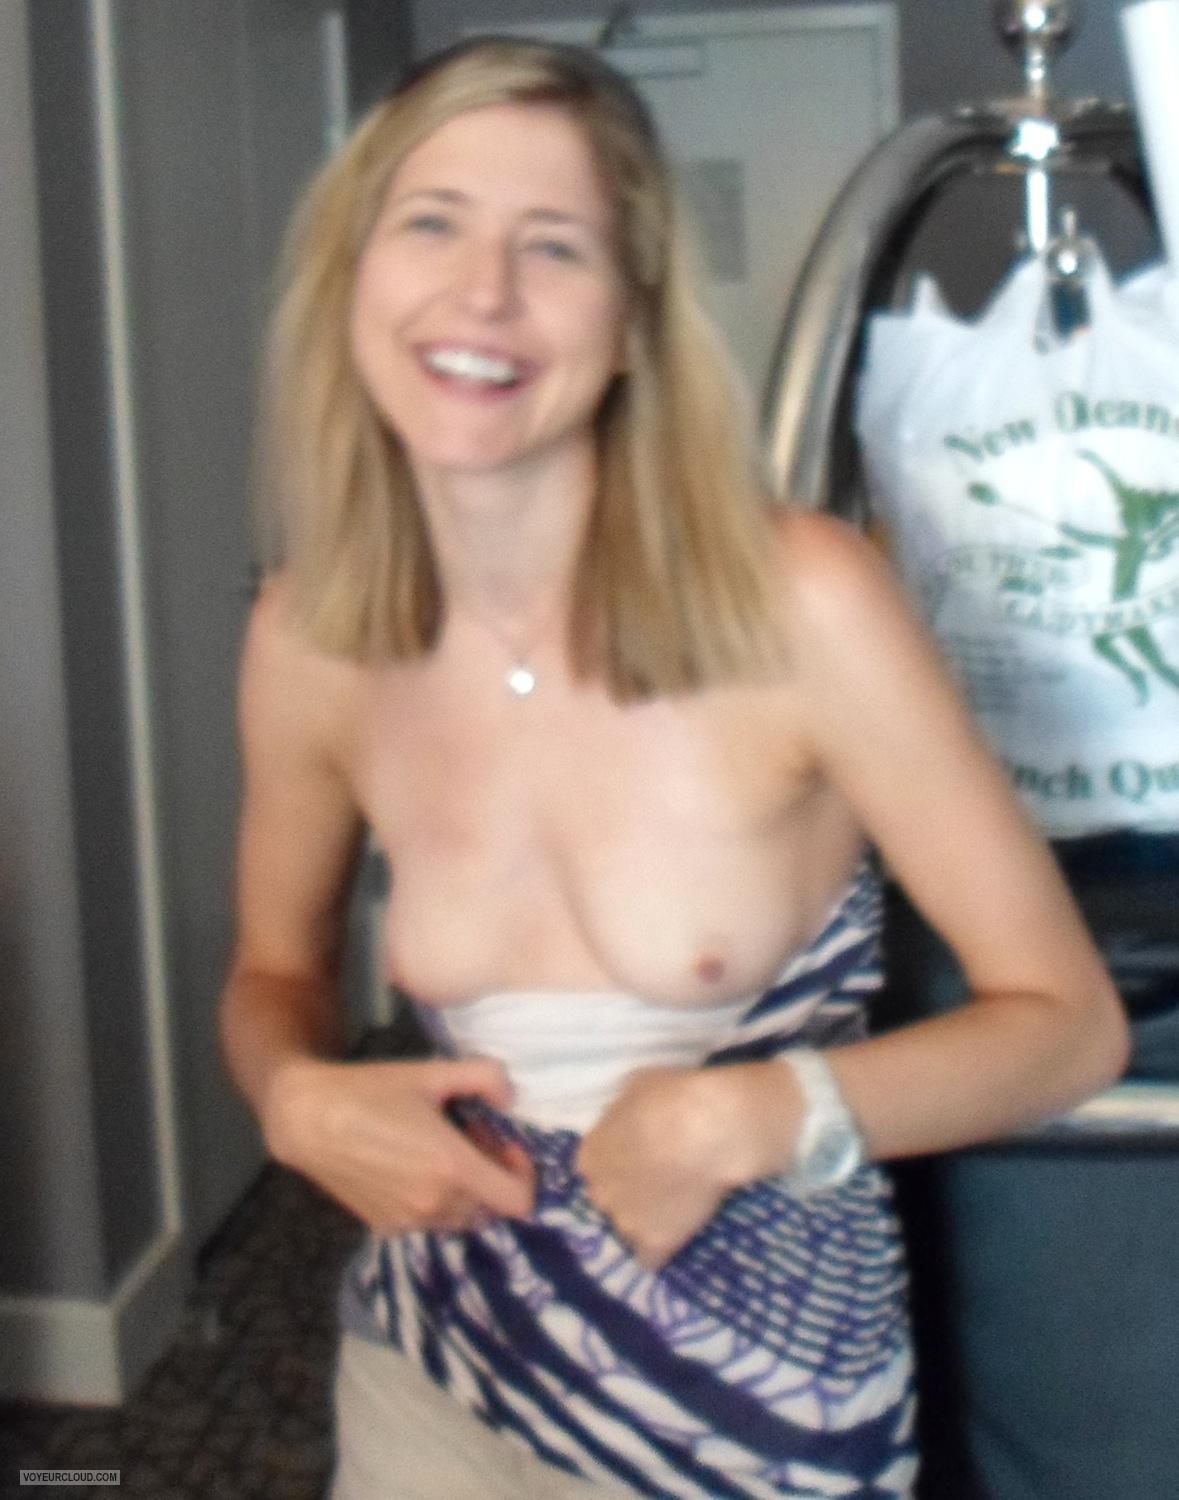 Tit Flash: My Small Tits - Topless C from United States